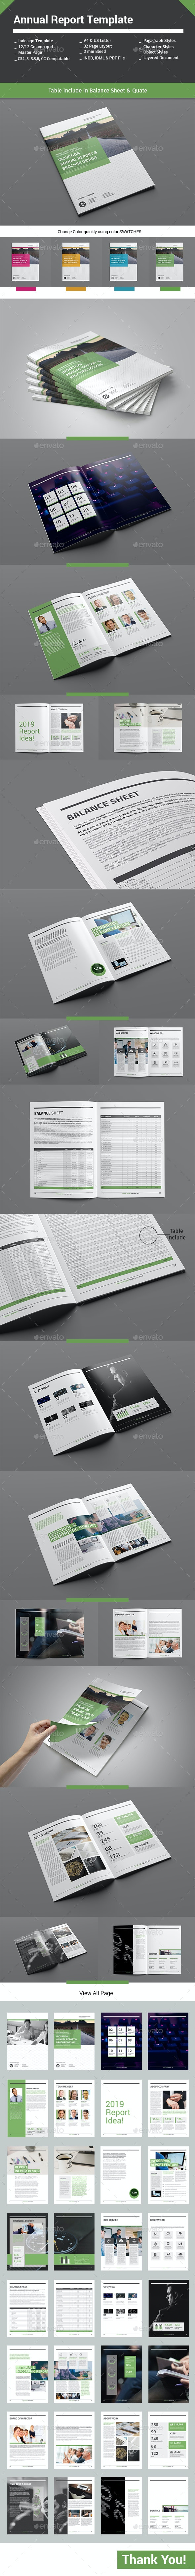 Annual Report Template 32 Pages - Informational Brochures